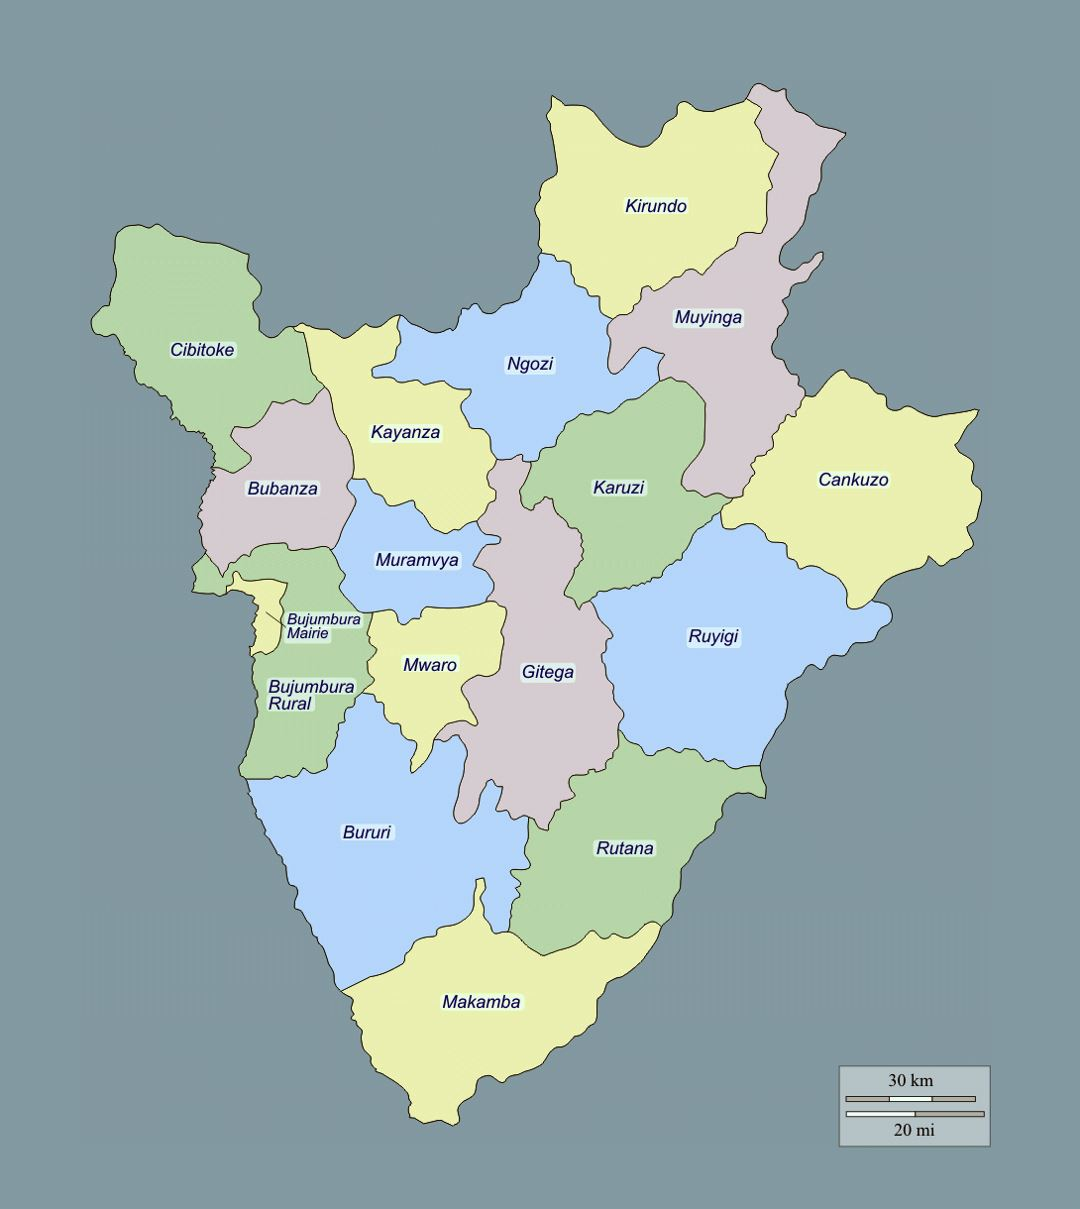 Detailed administrative map of Burundi